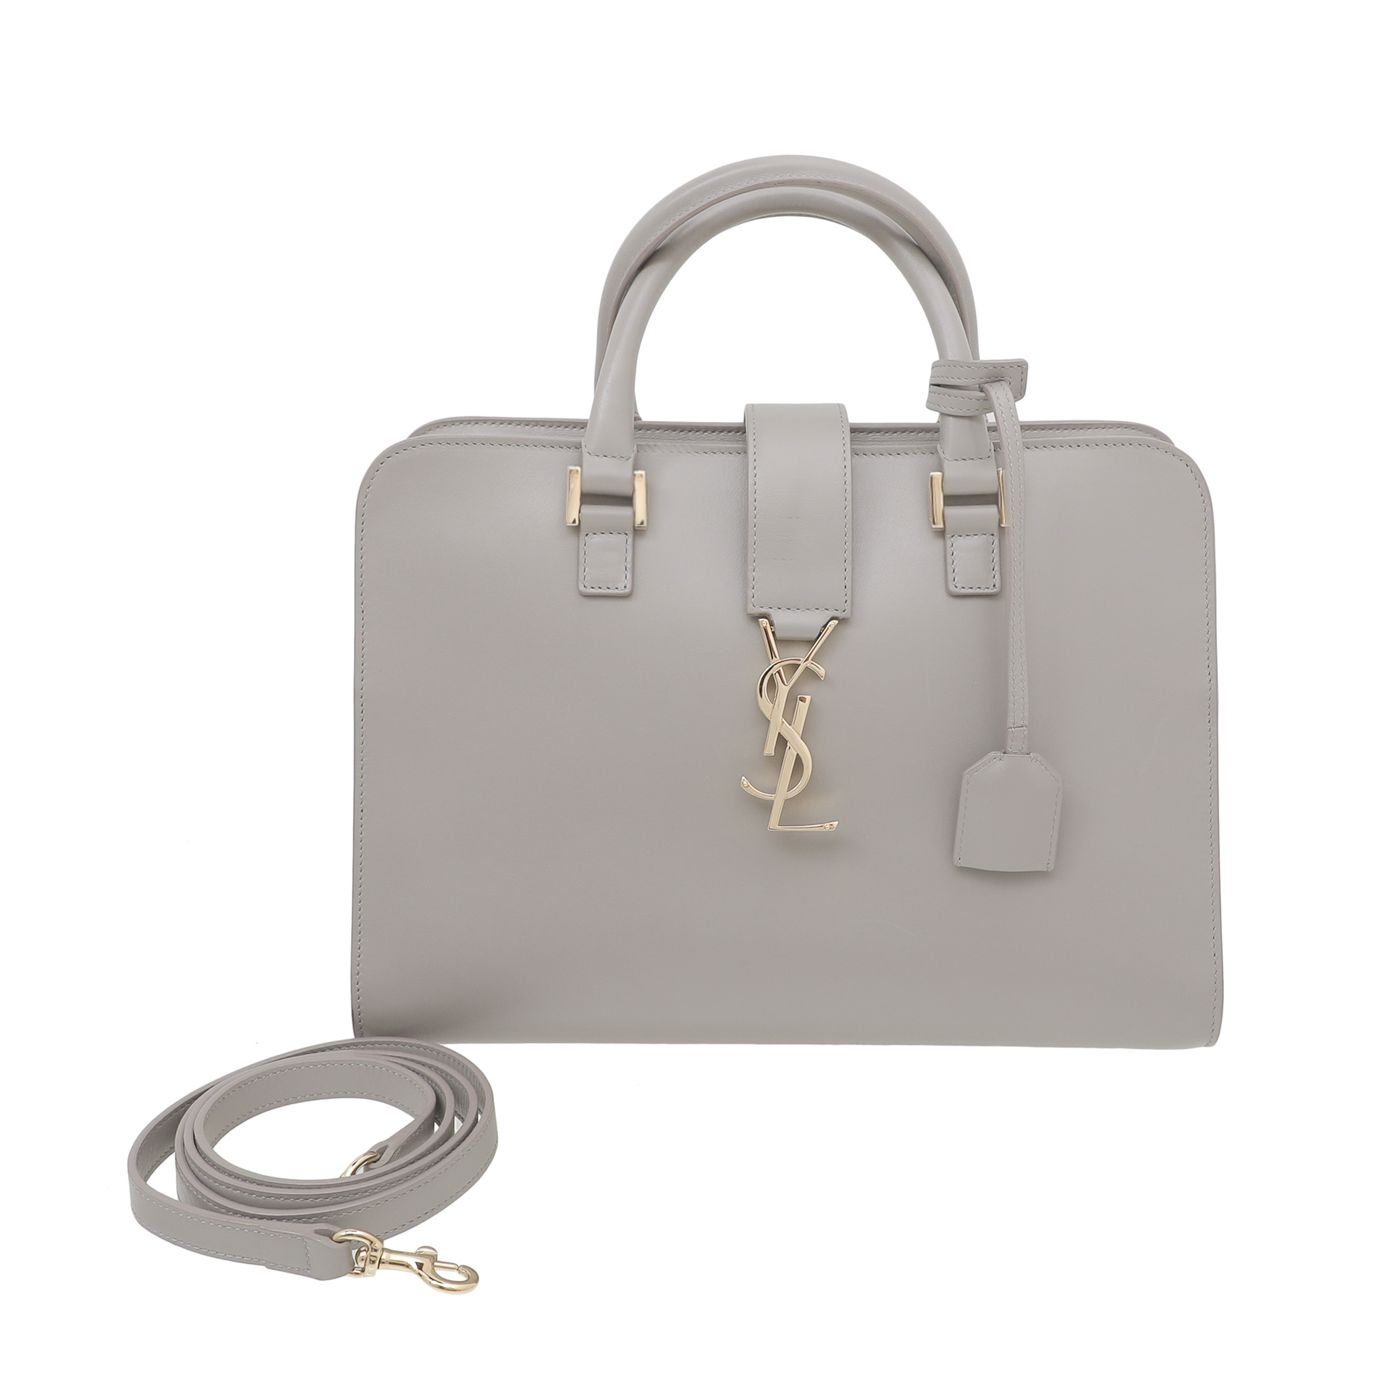 YSL Gray Cabas Monogram Tote Bag